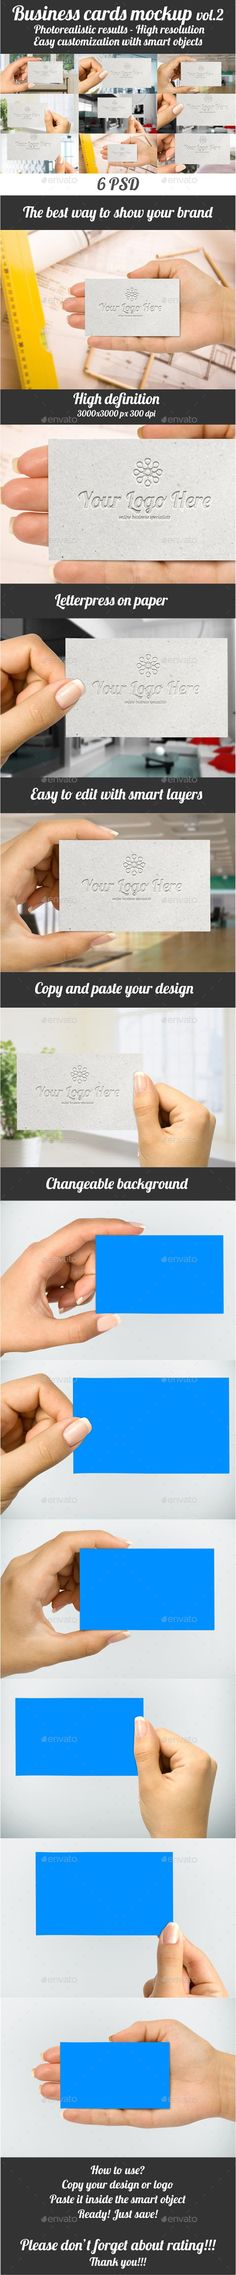 Folded Business Card Mockup V1 | Folded business cards, Mockup and ...